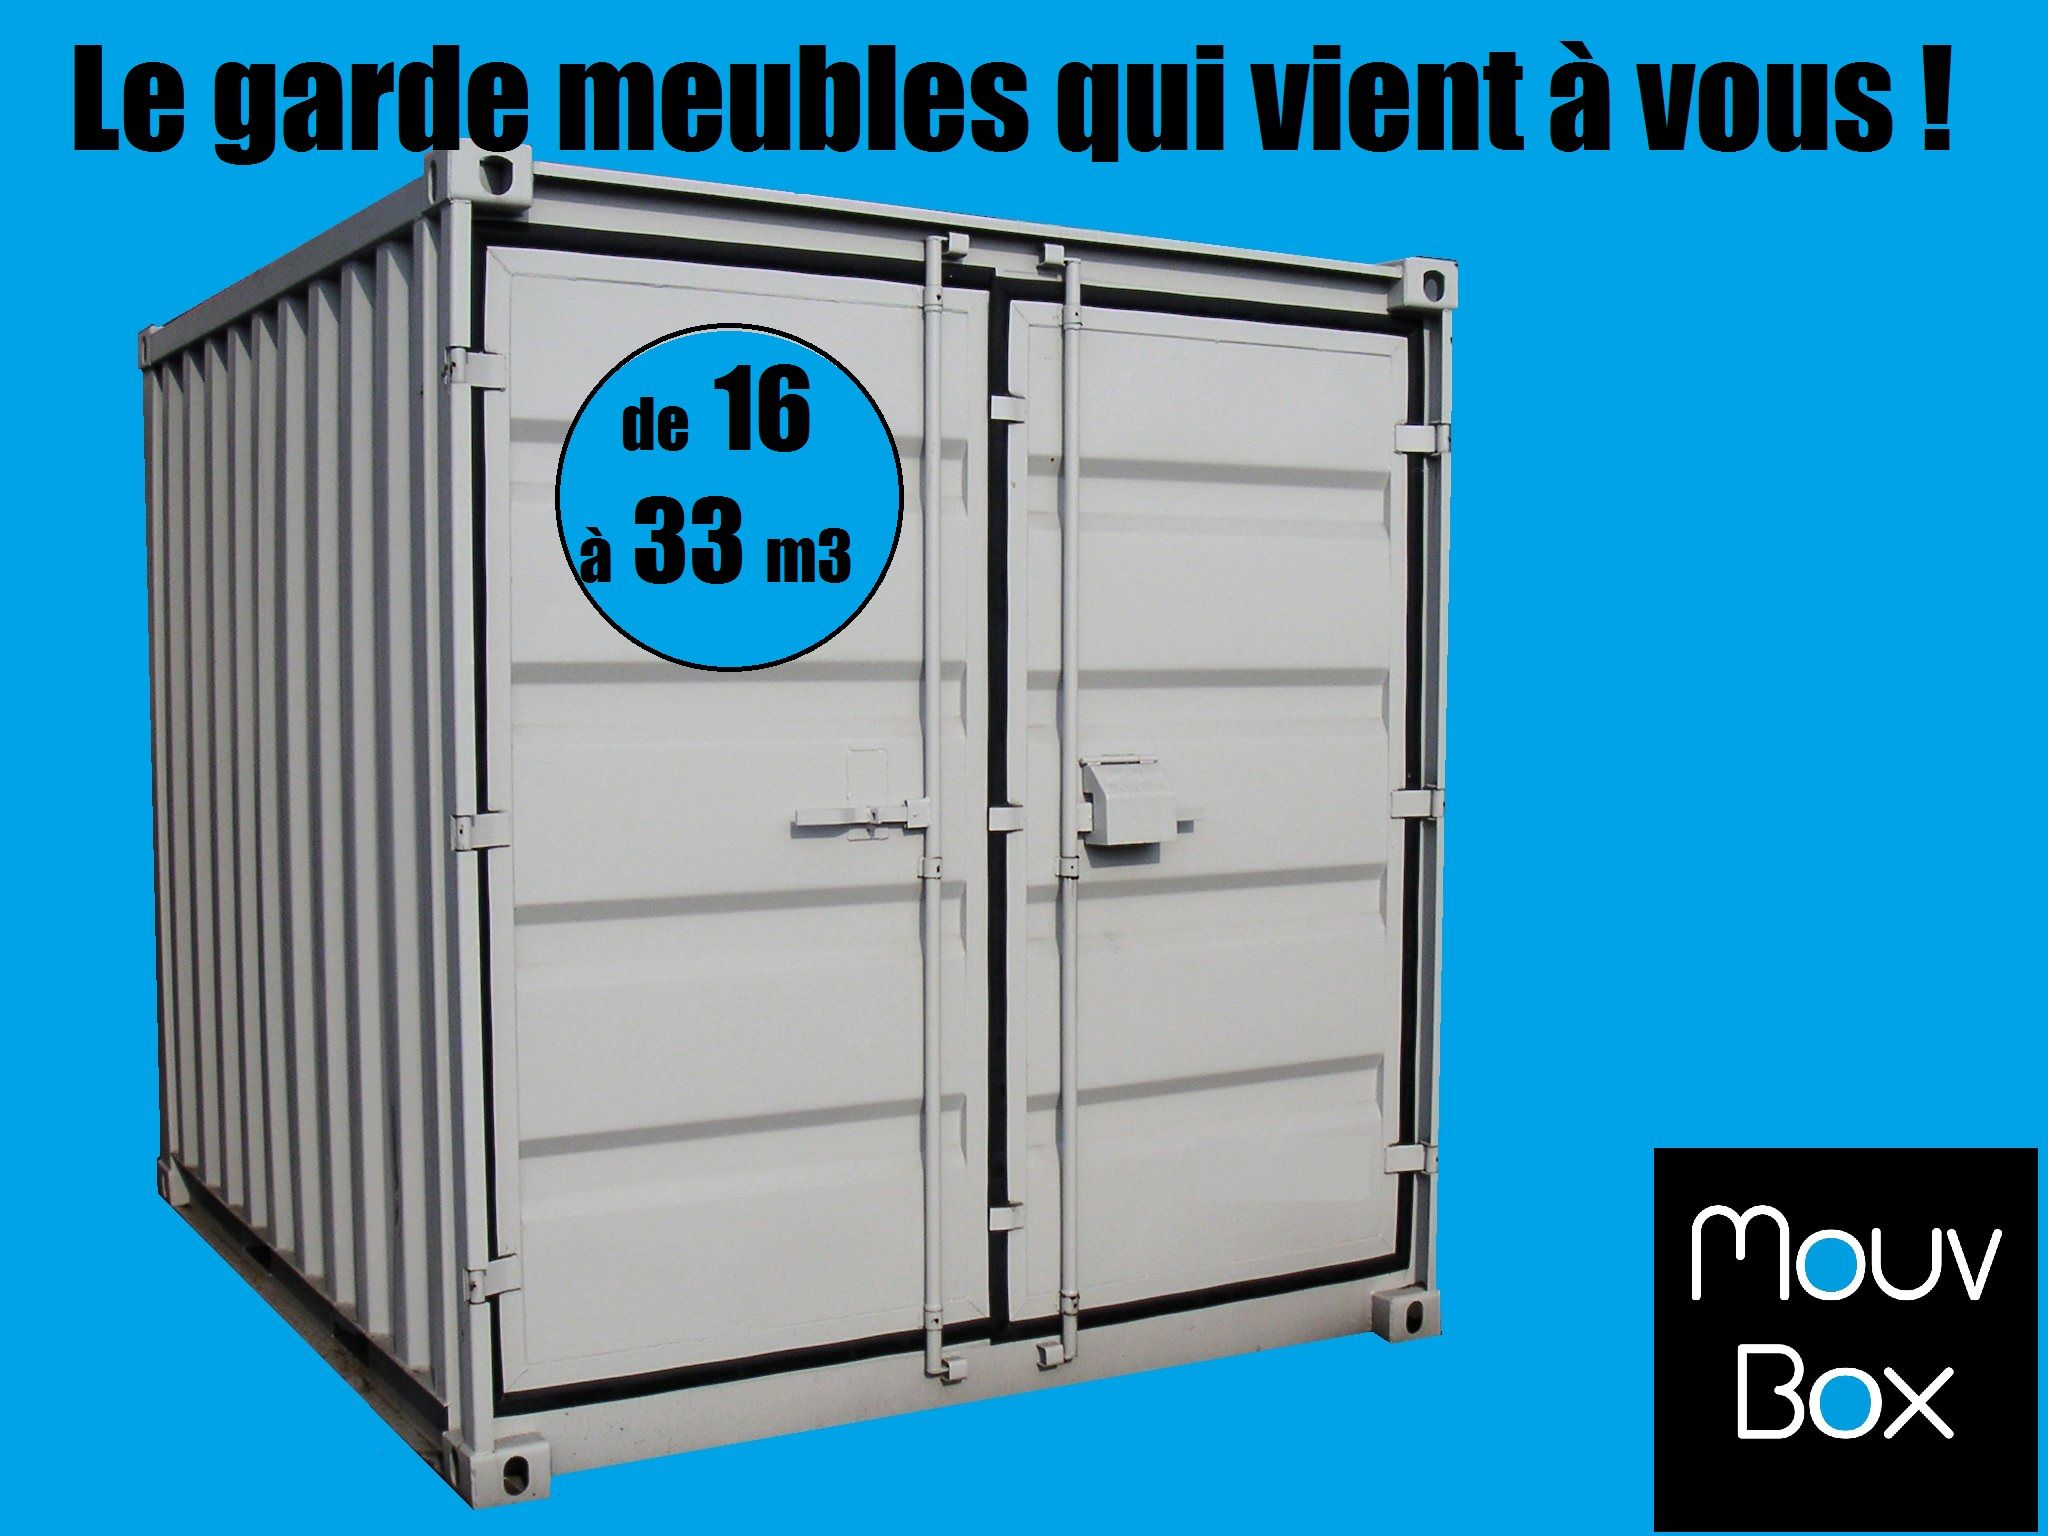 Location Container Garde Meuble Mouvbox France Garde Meubles Location Selfstockage Box Container